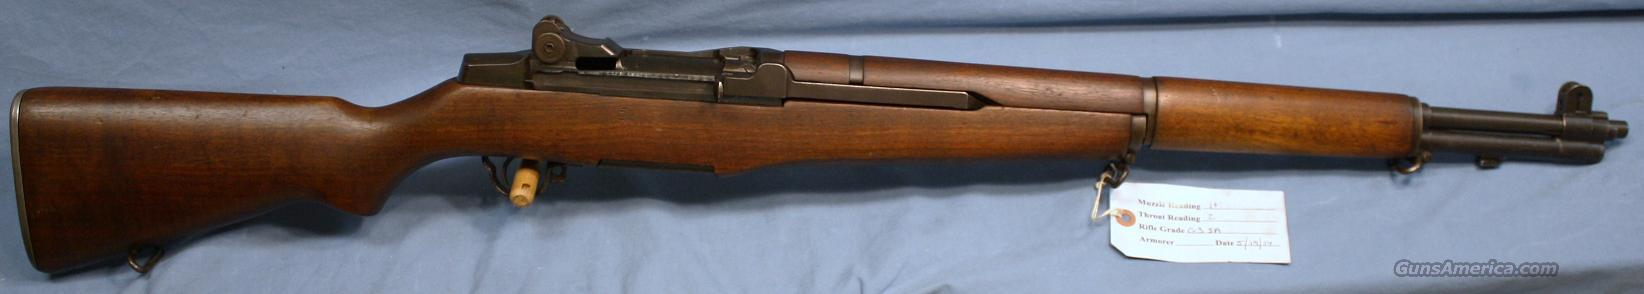 U.S. Army M1 Garand Semi-Automatic Rifle 30.06  Guns > Rifles > Military Misc. Rifles US > M1 Garand